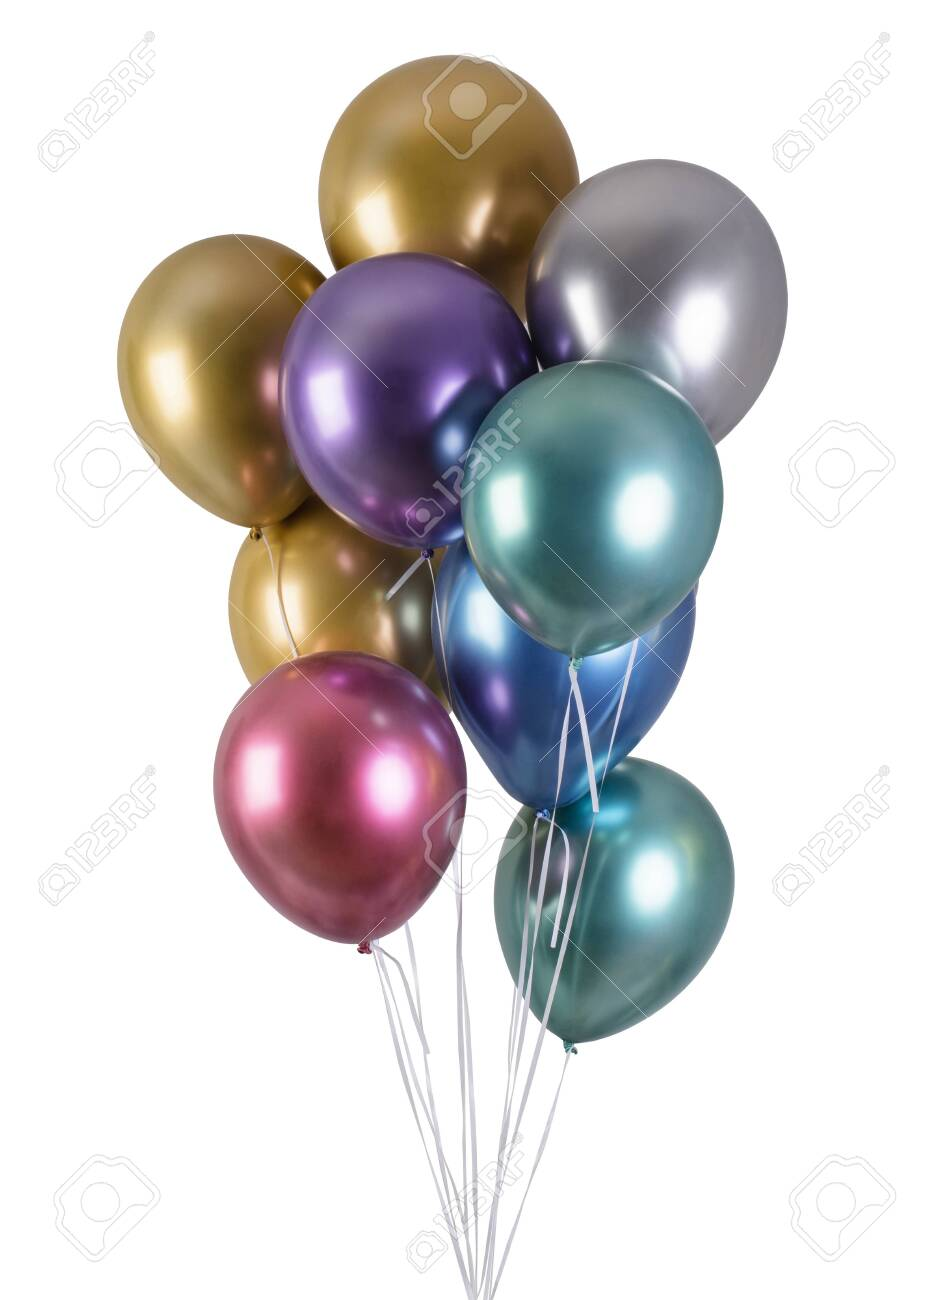 A bunch of multi-colored metallized balloons for party isolated on black background - 145141017